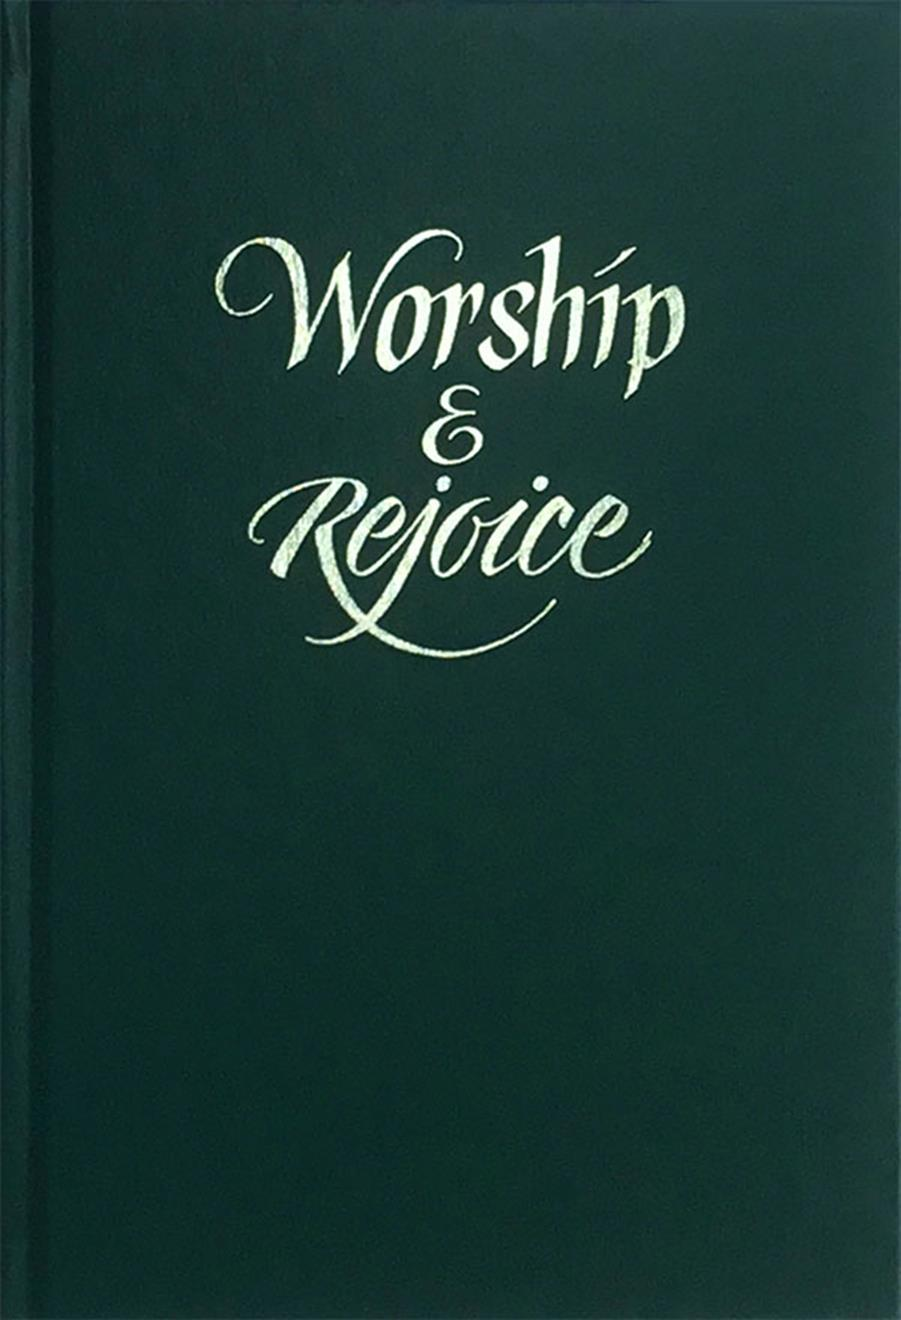 Worship and Rejoice - Green Cover Image